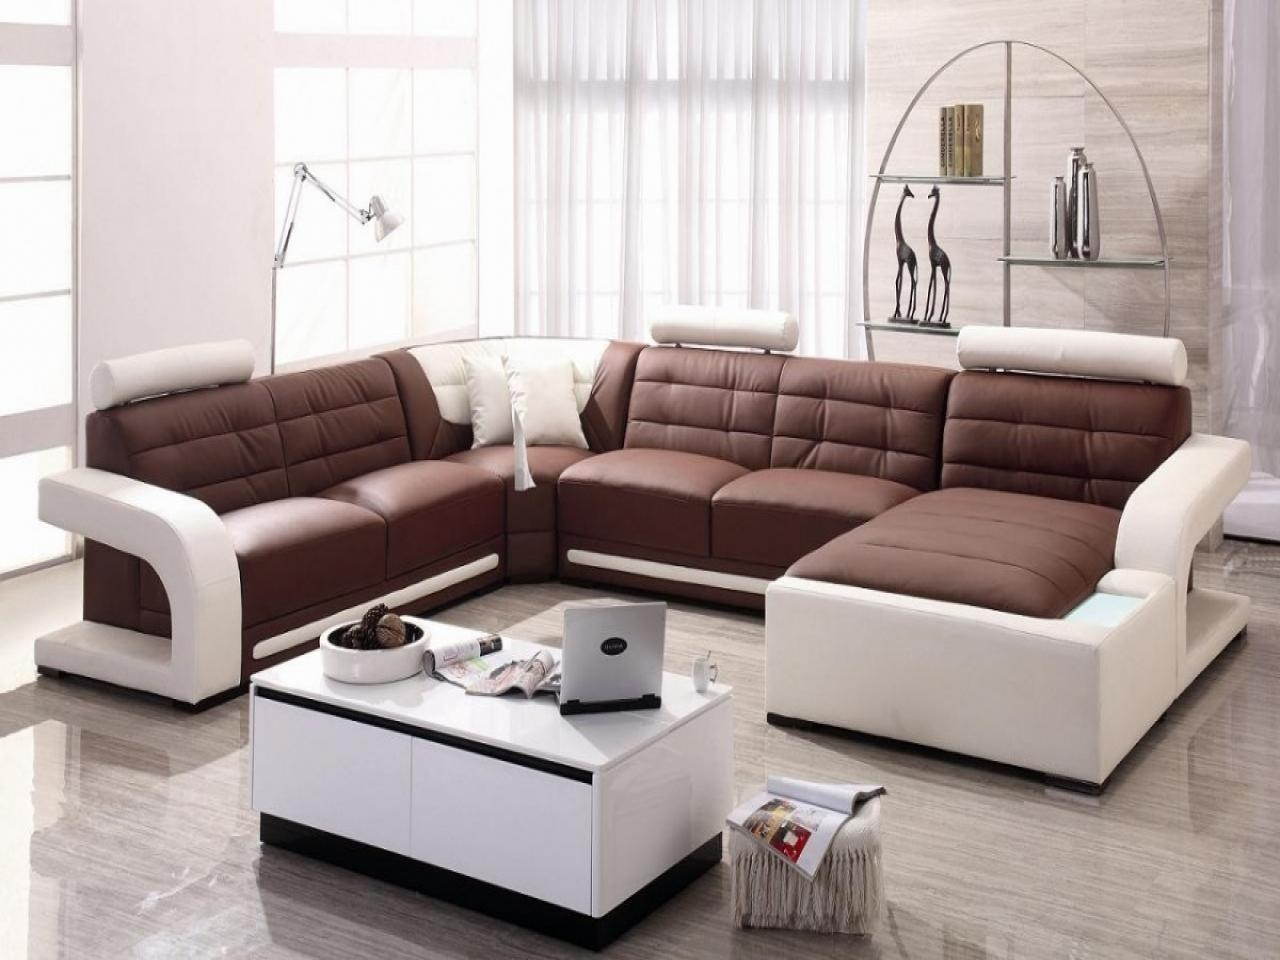 Furniture: Decoration Sectionals For Sale In Modern Room Design For Modern Sofas Sectionals (View 11 of 21)